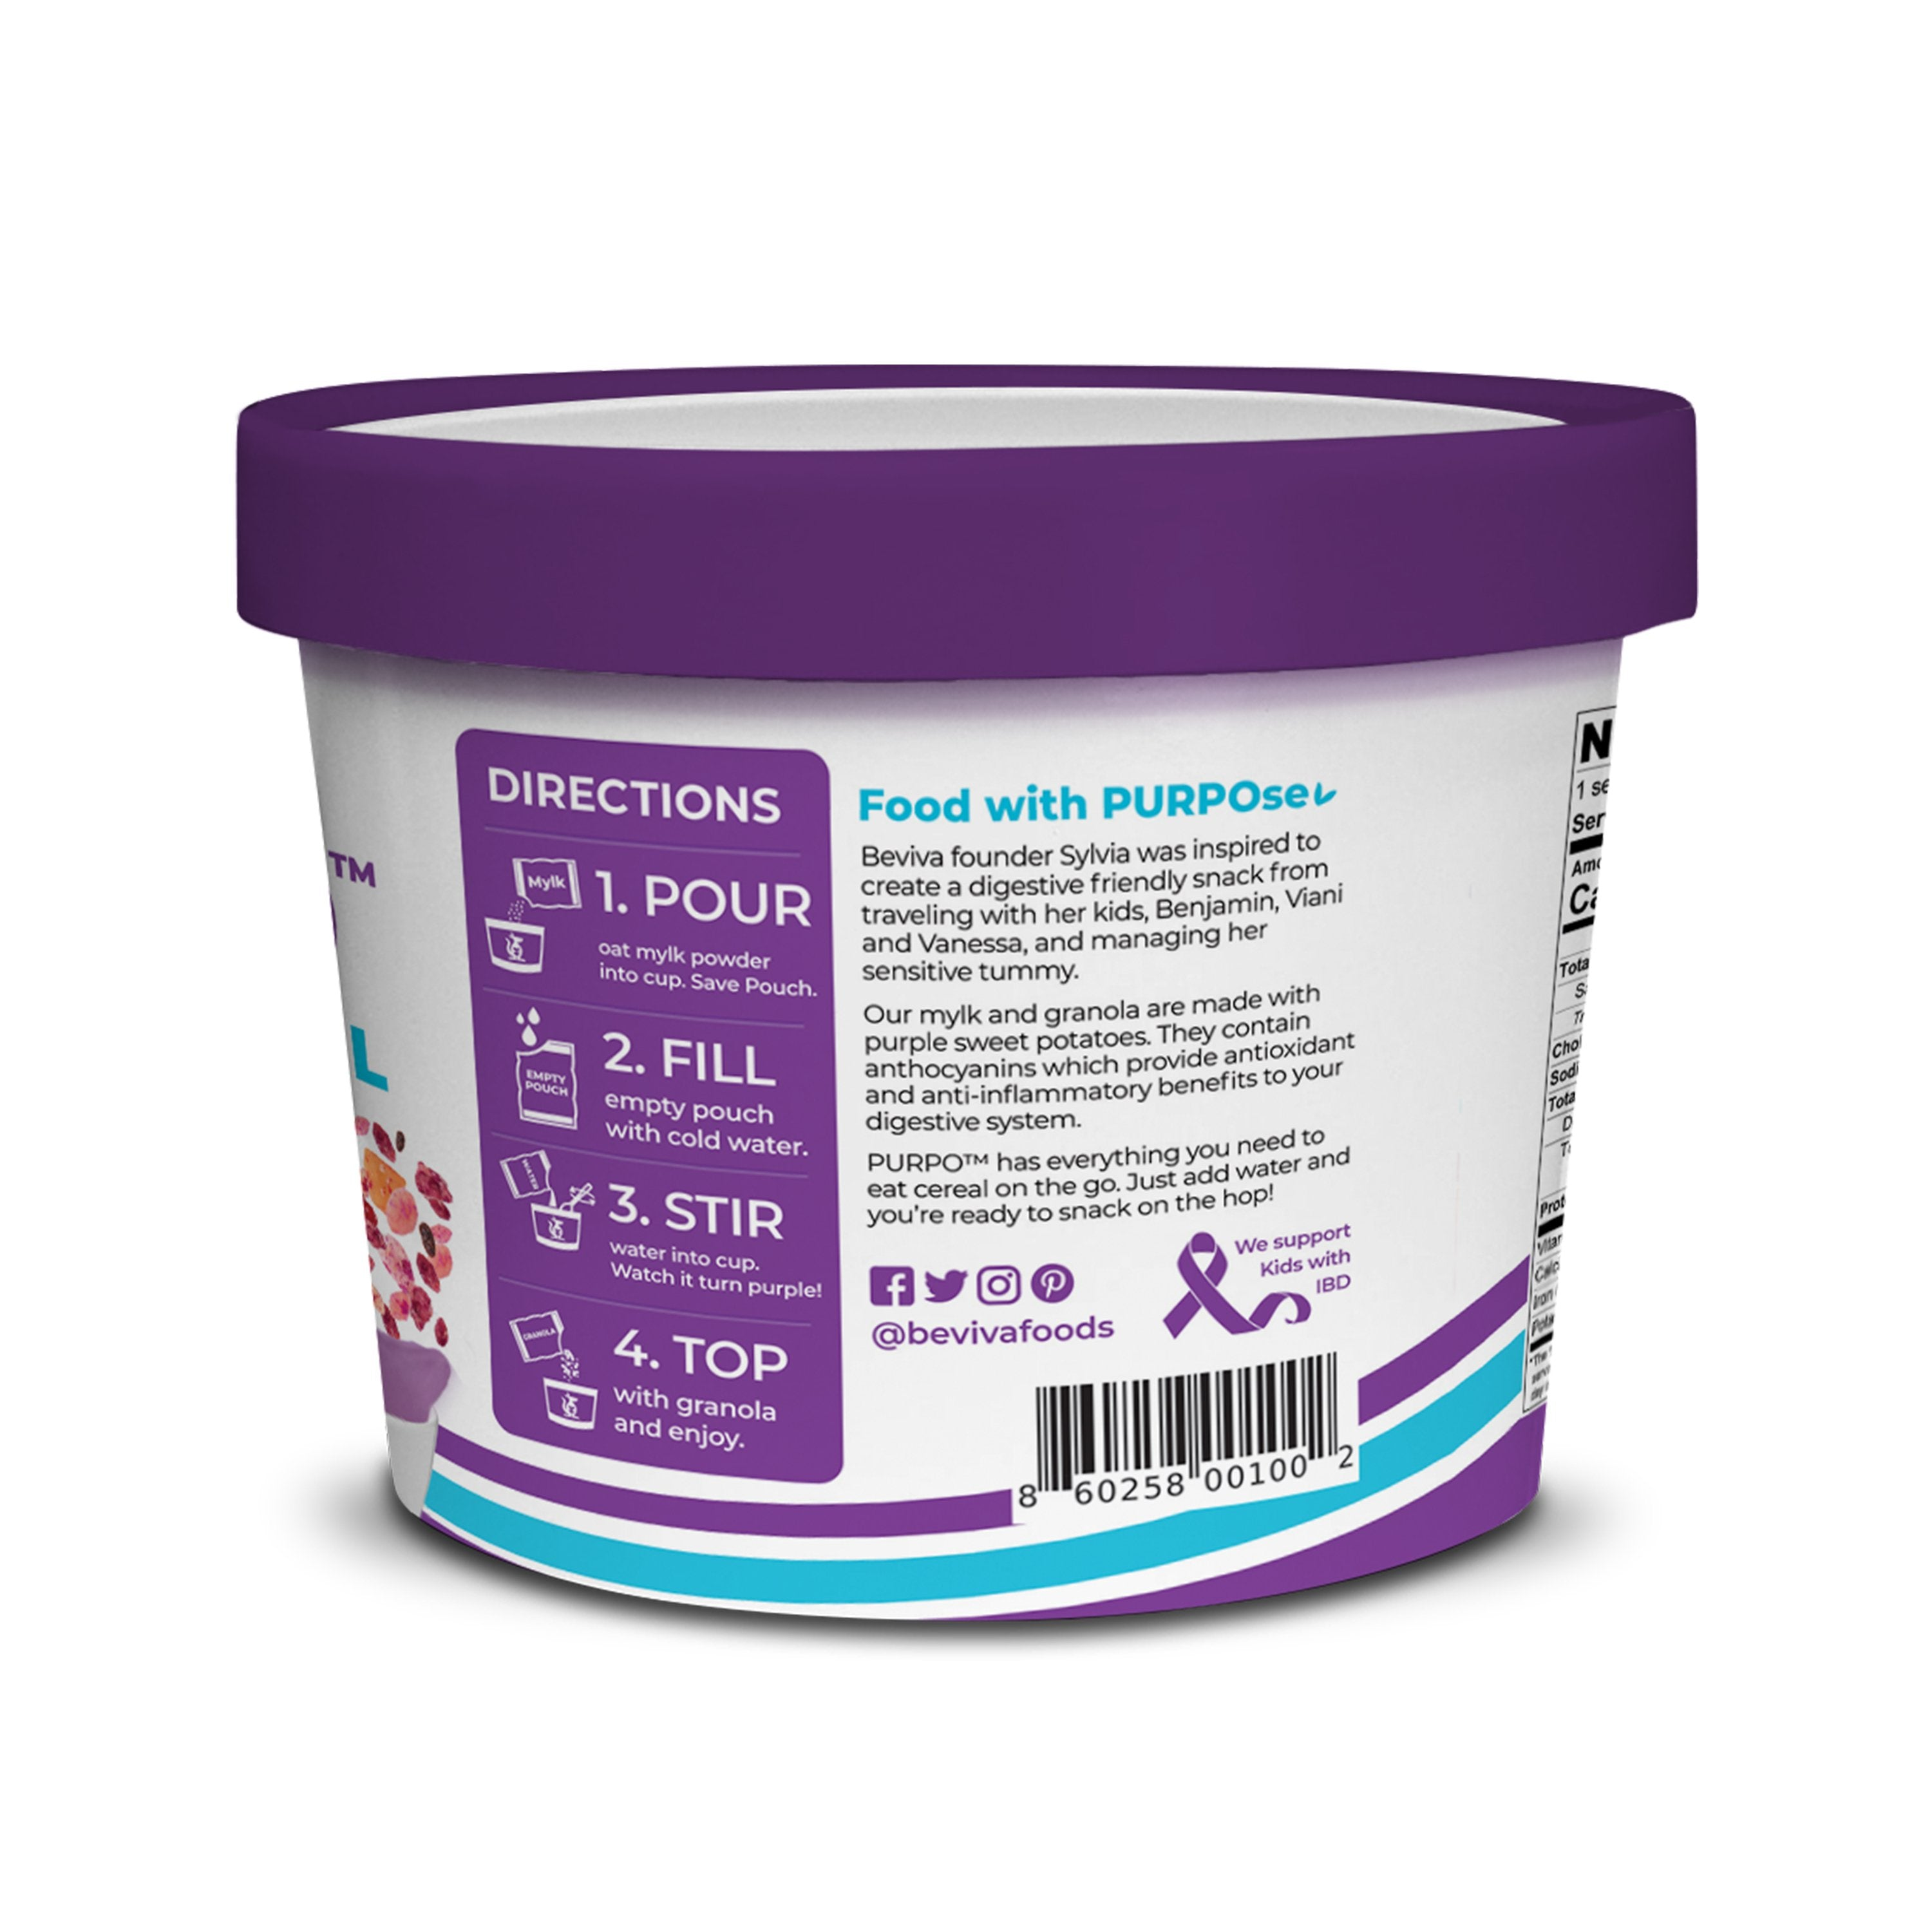 PURPO All-in-One Cereal Cup 1.73 oz